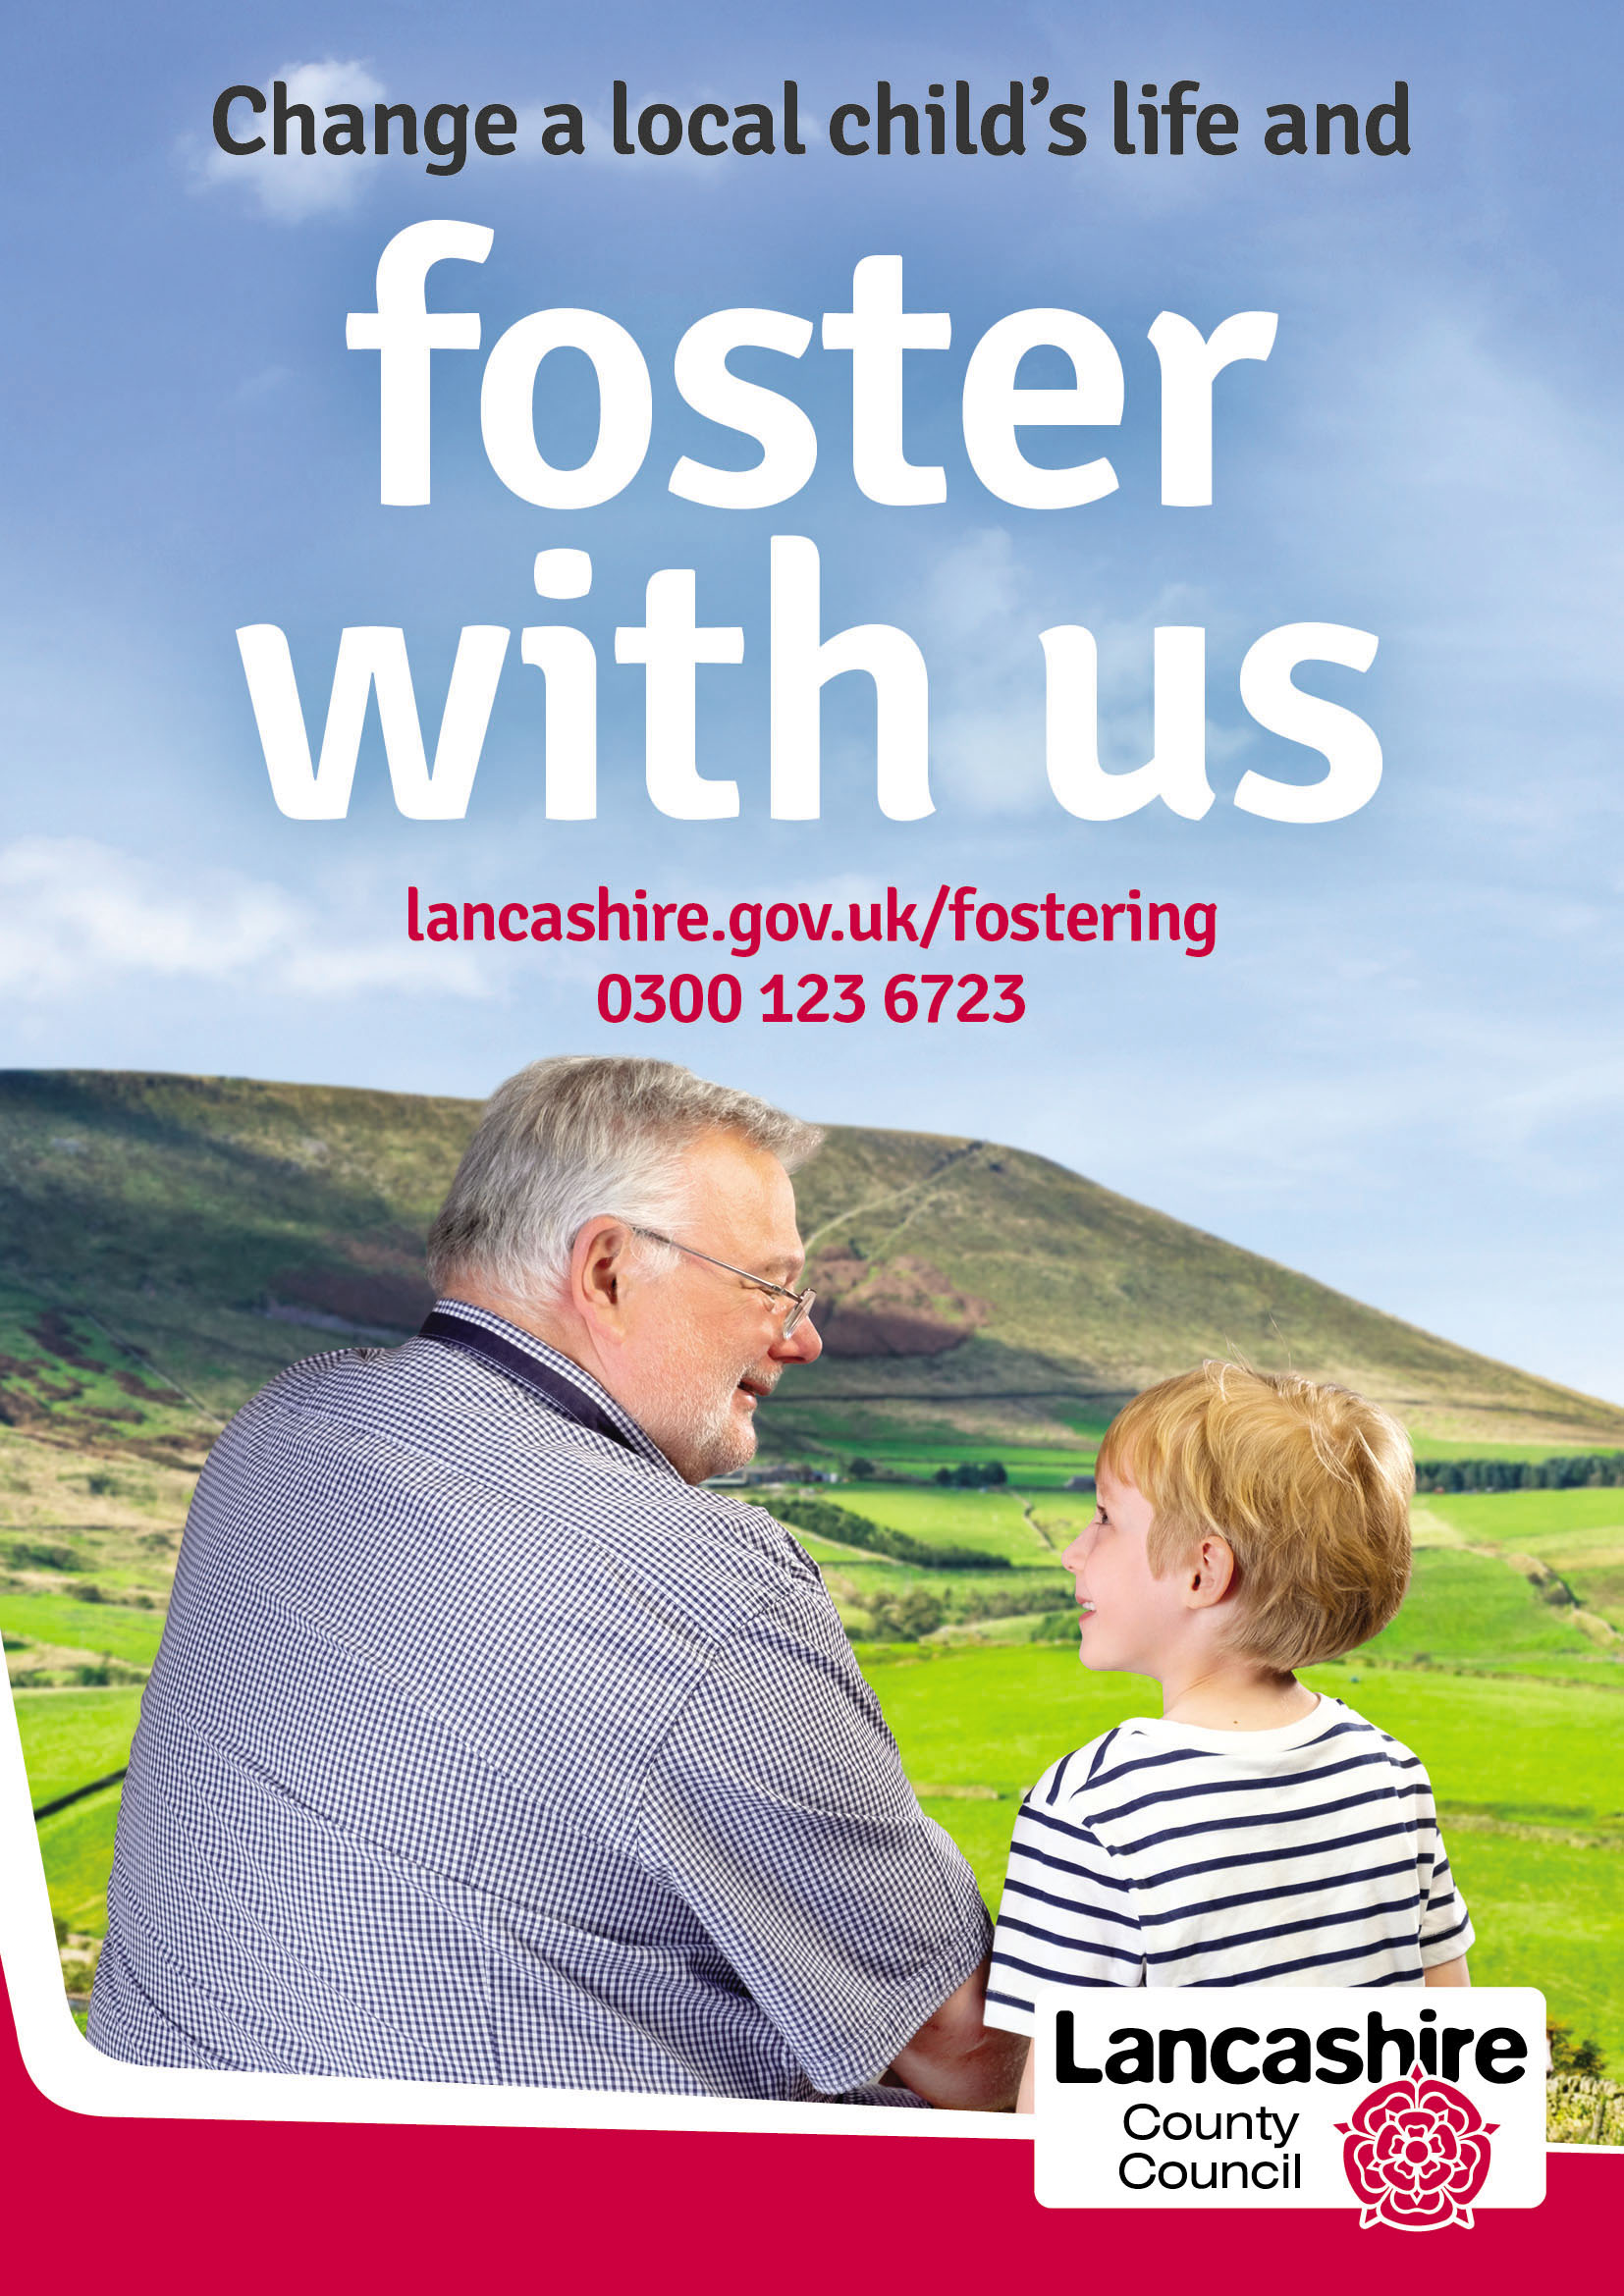 , Lancashire County Council campaign to recruit carers to foster local children, Skem News - The Top Source for Skelmersdale News, Skem News - The Top Source for Skelmersdale News